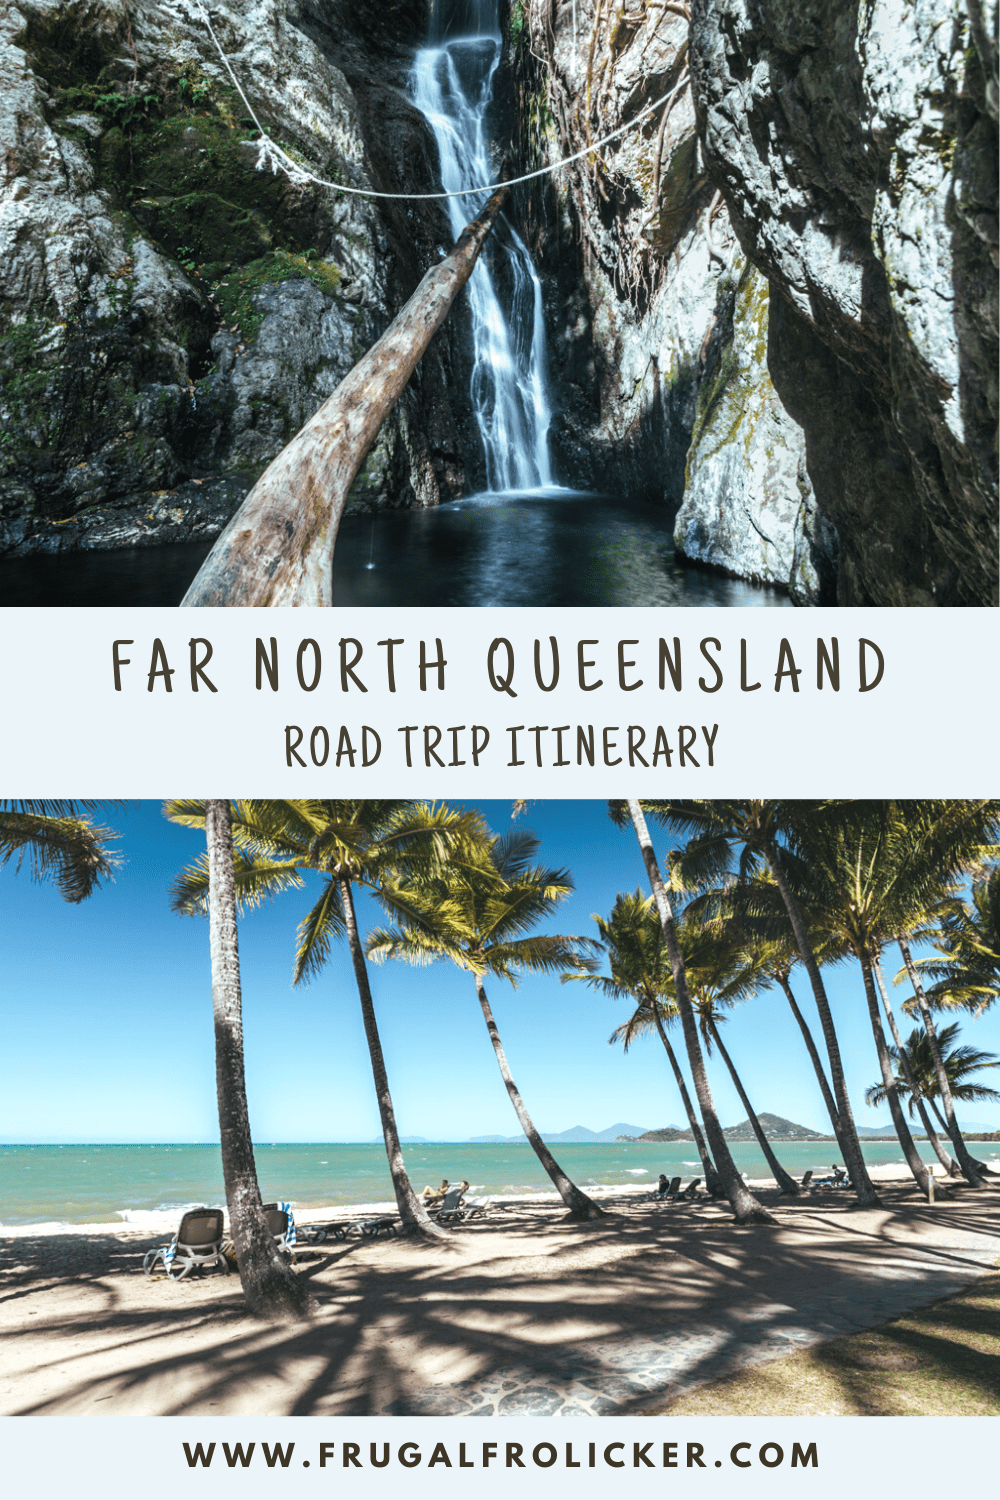 Far North Queensland road trip itinerary